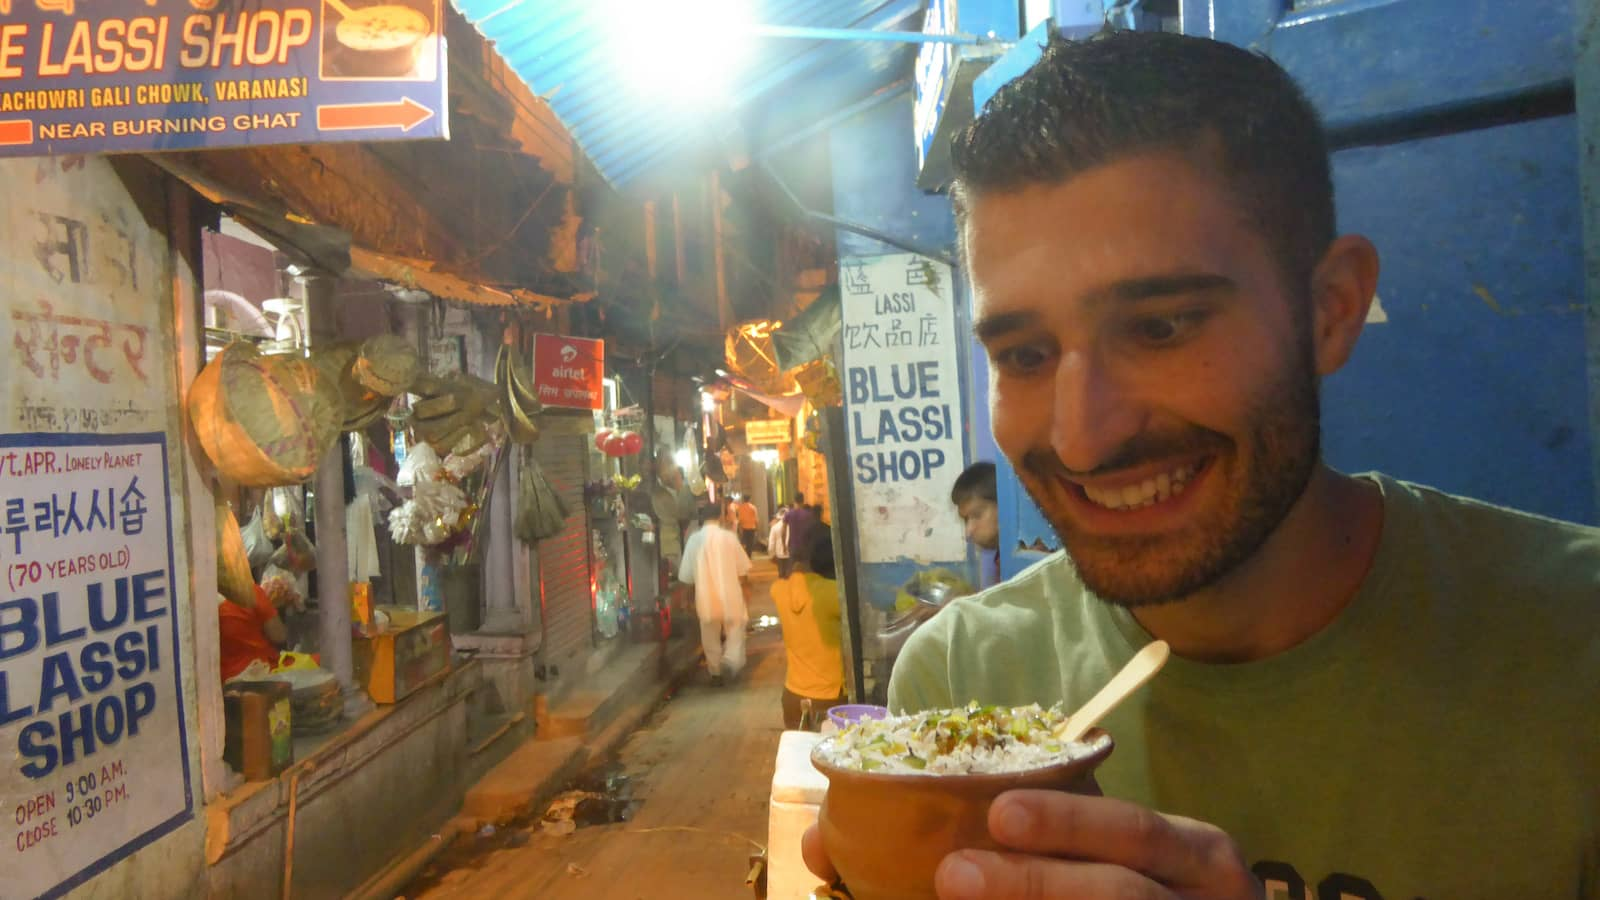 Blue Lassi gay friendly bar in Varanasi